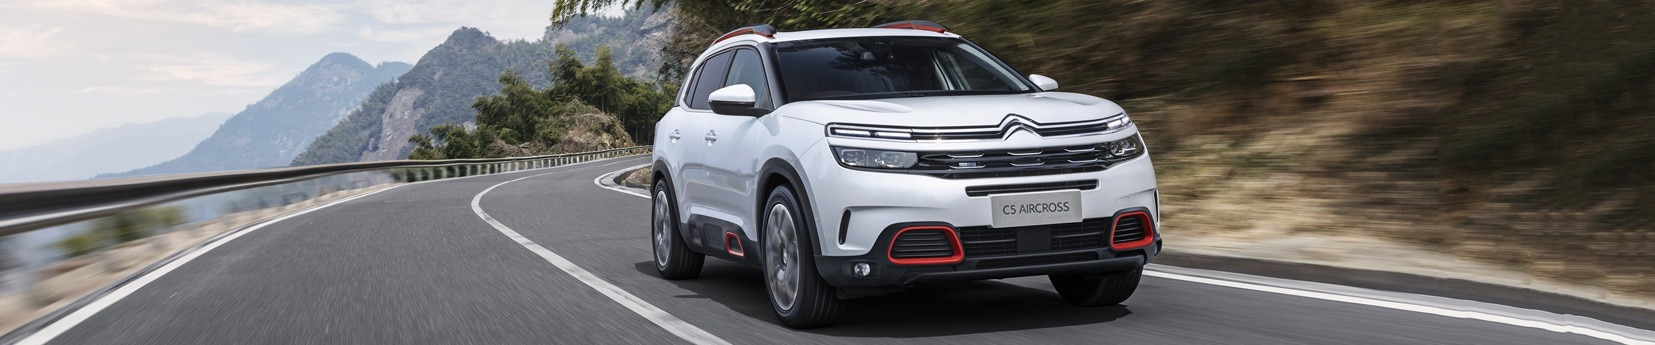 Citroen-Reliability-New-Citroen-C5-Aircross